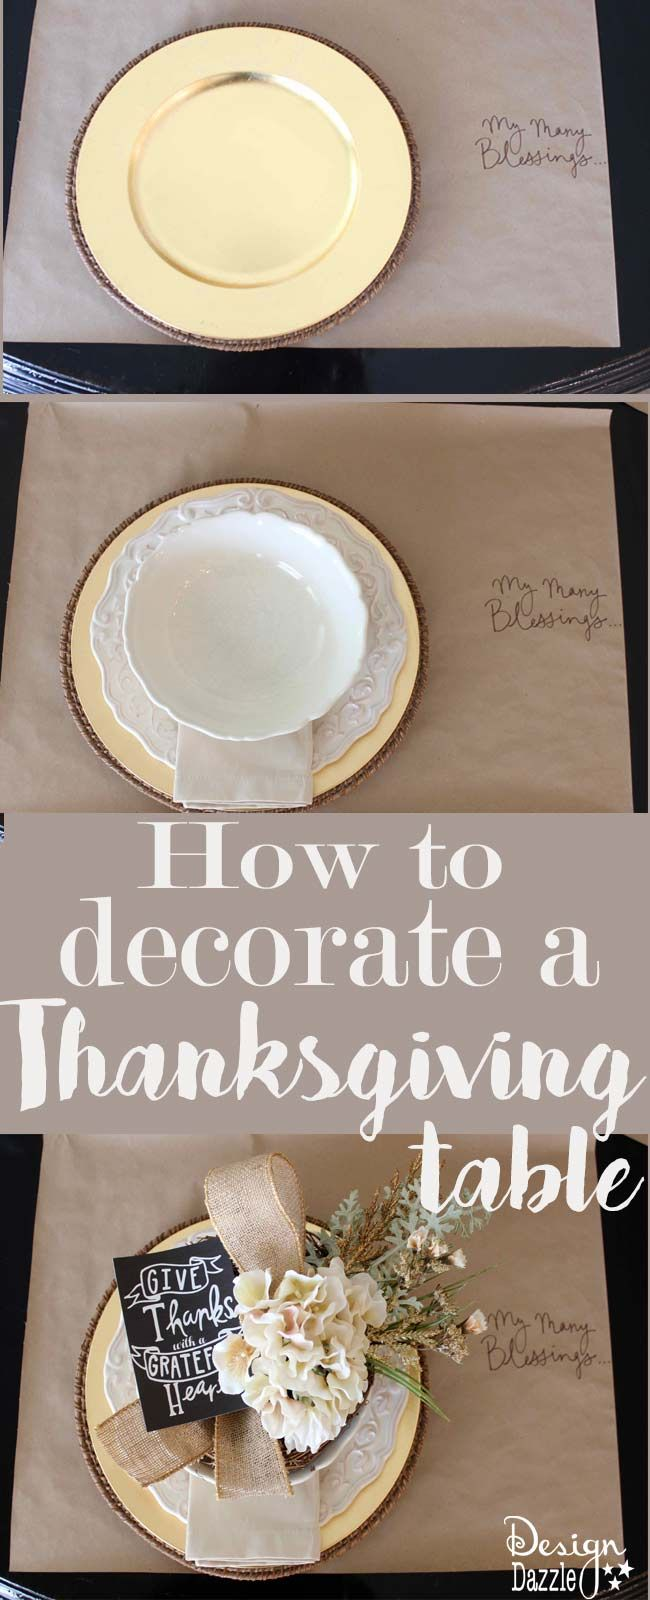 "I'm sharing how-to decorate step-by-step  a Thanksgiving tablescape - a bit of neutral with a touch of glitz. Free printable ""Give Thanks with a Grateful Heart"". MichaelsMakers Design Dazzle"